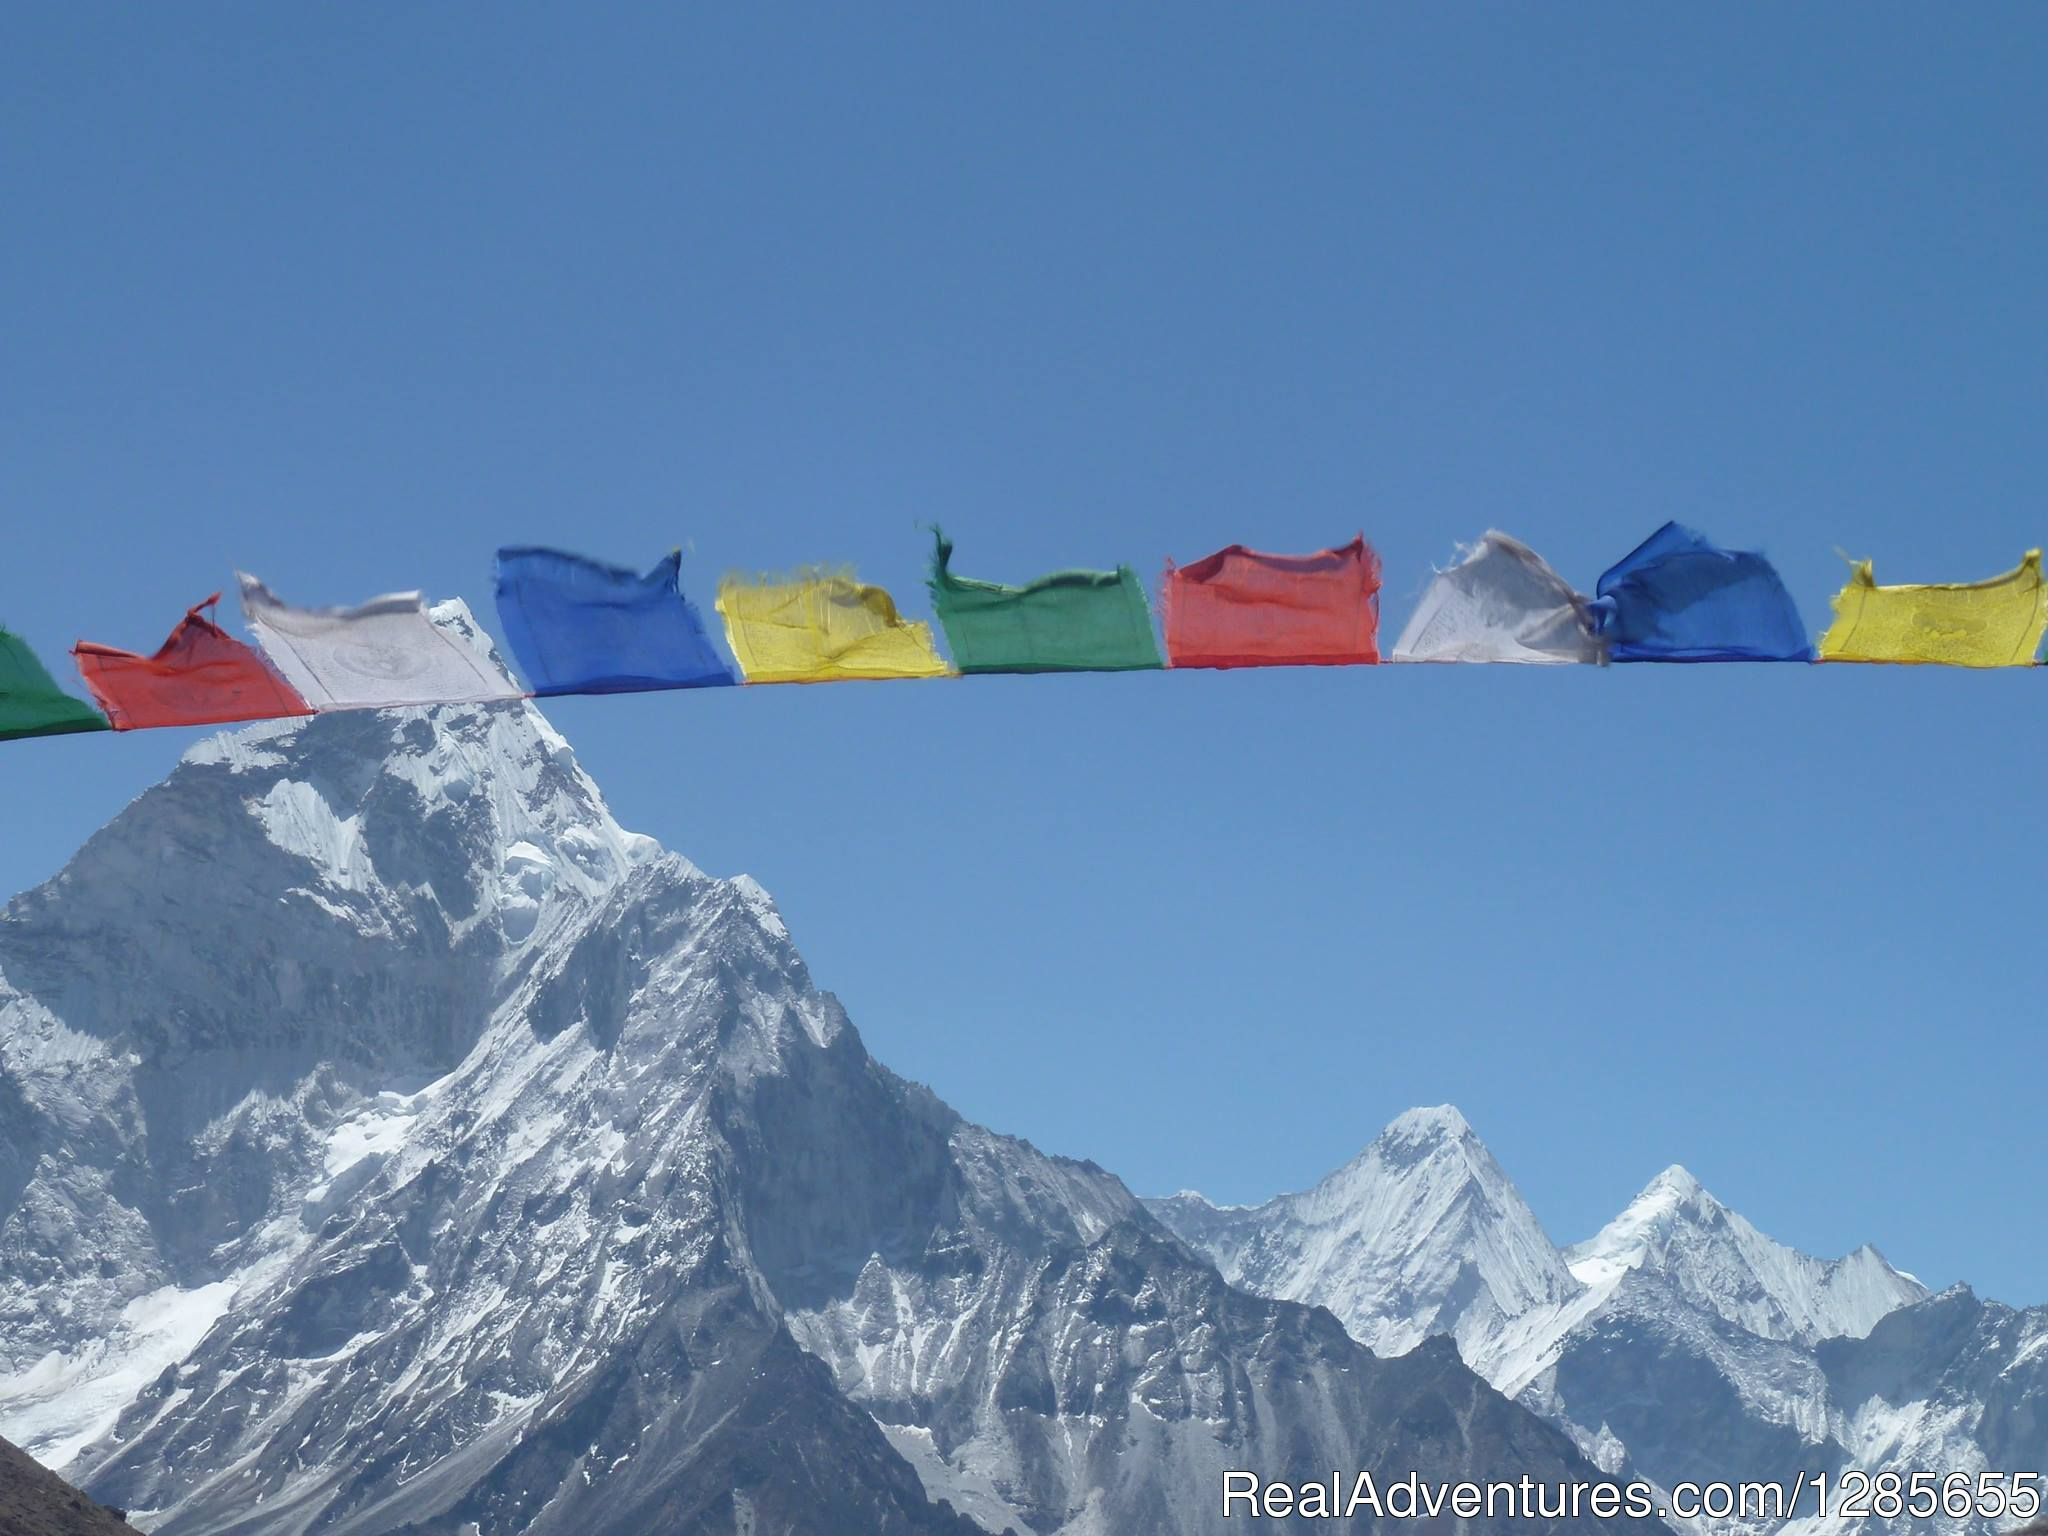 Pry flag with view of Everest range